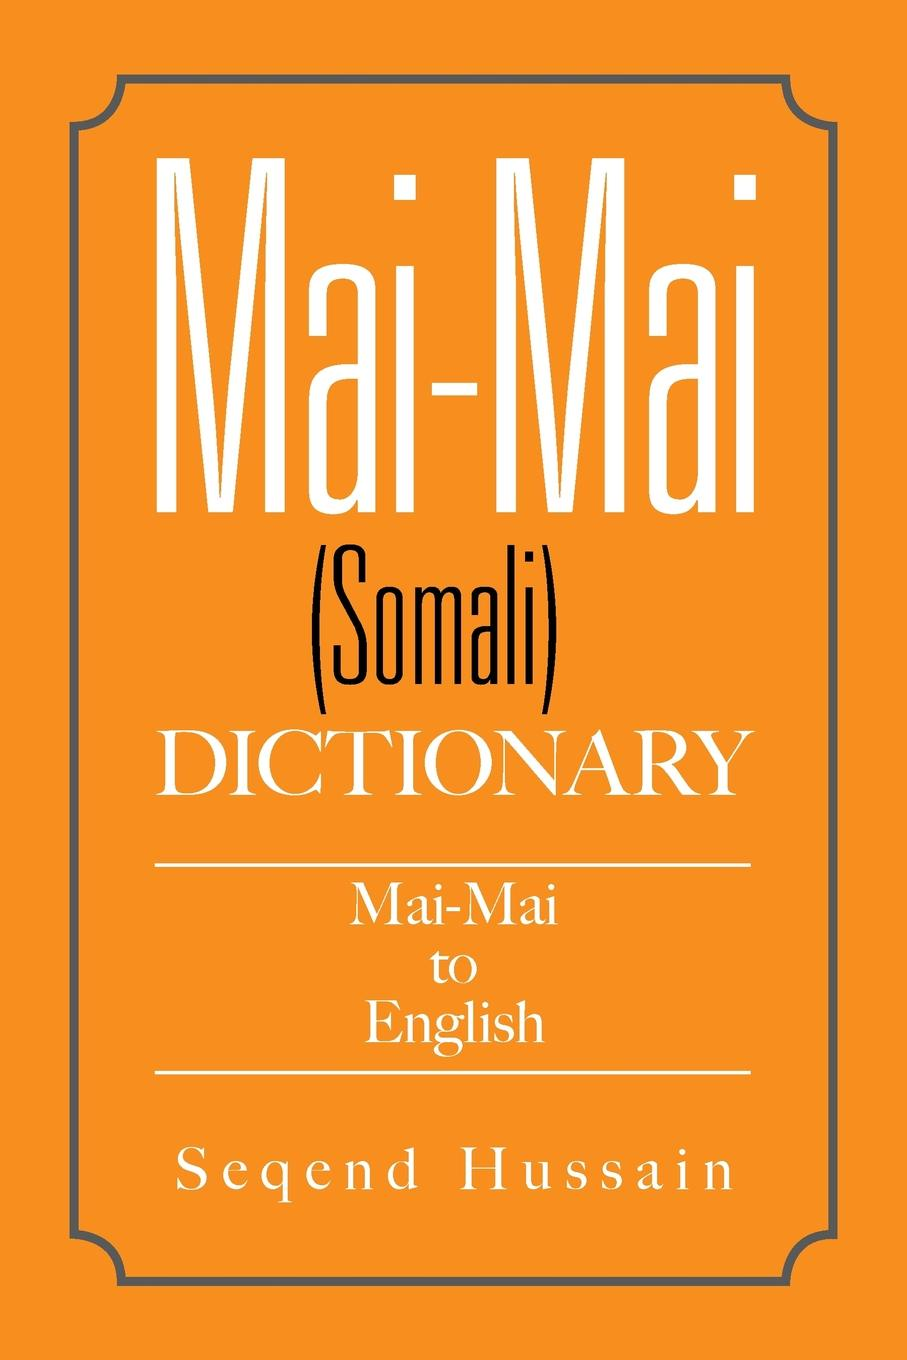 Seqend Hussain Mai-Mai (Somali) Dictionary. Mai-Mai to English